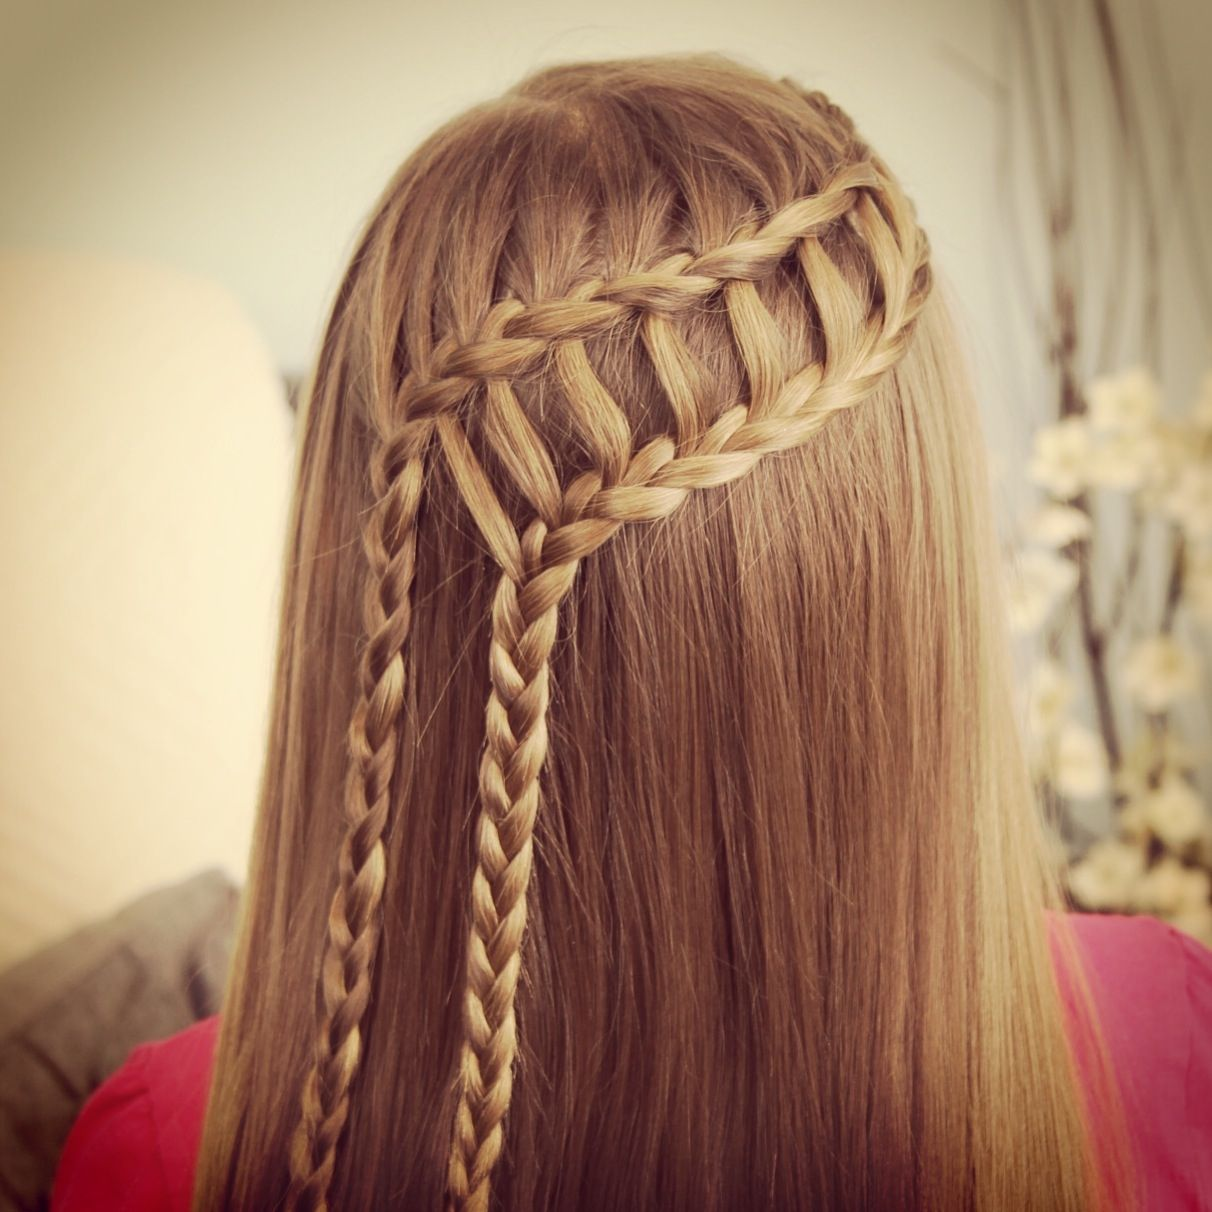 Feather waterfall amp ladder braid combo in hairstyles cute